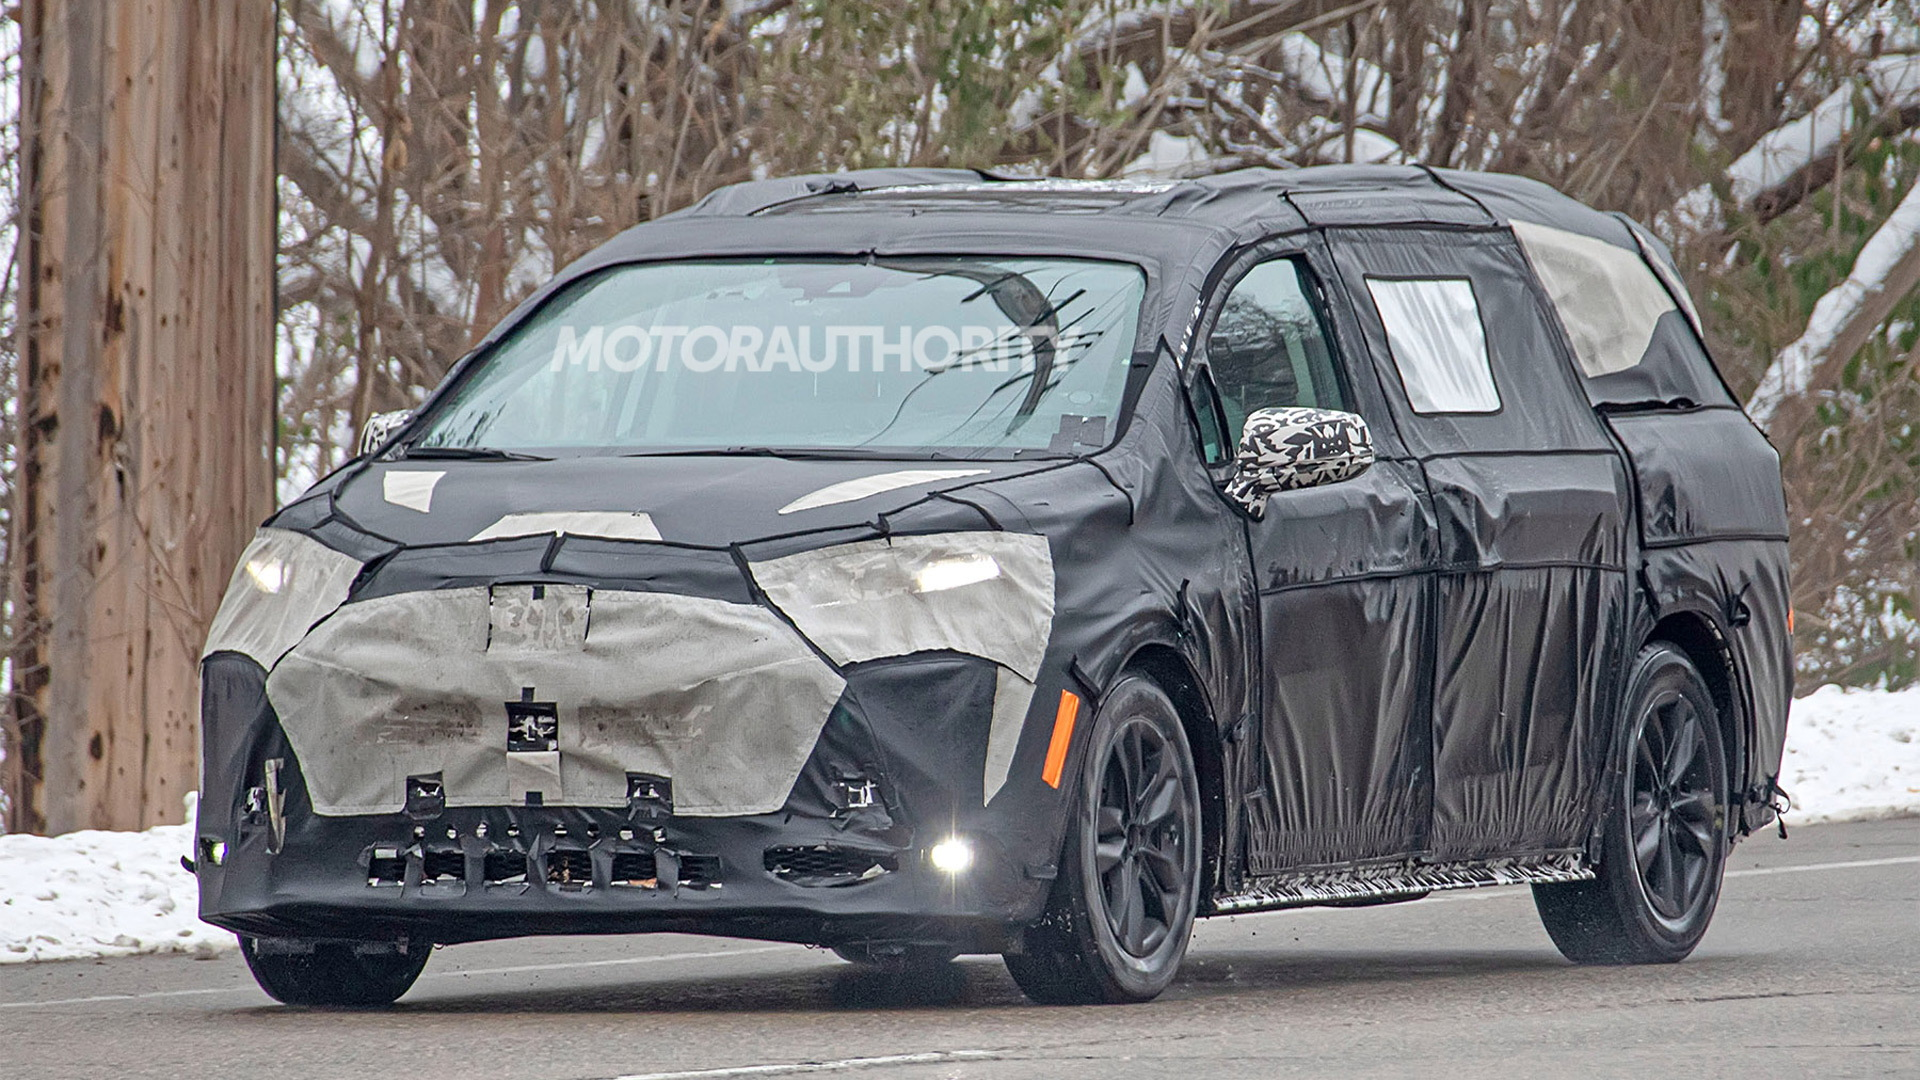 2021 Toyota Sienna spy shots - Photo credit: S. Baldauf/SB-Medien